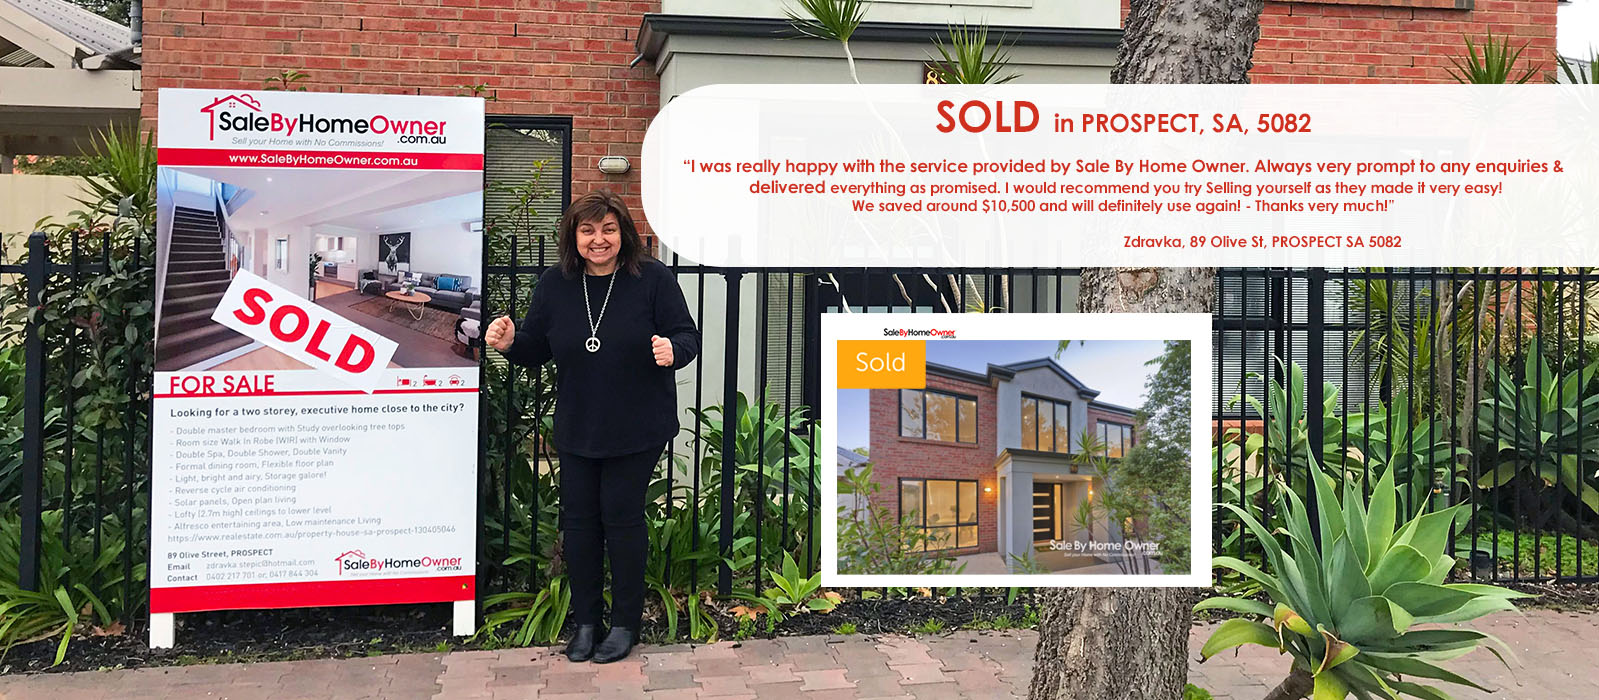 Sell your own Home: Another Happy customer from PROSPECT in South Australia